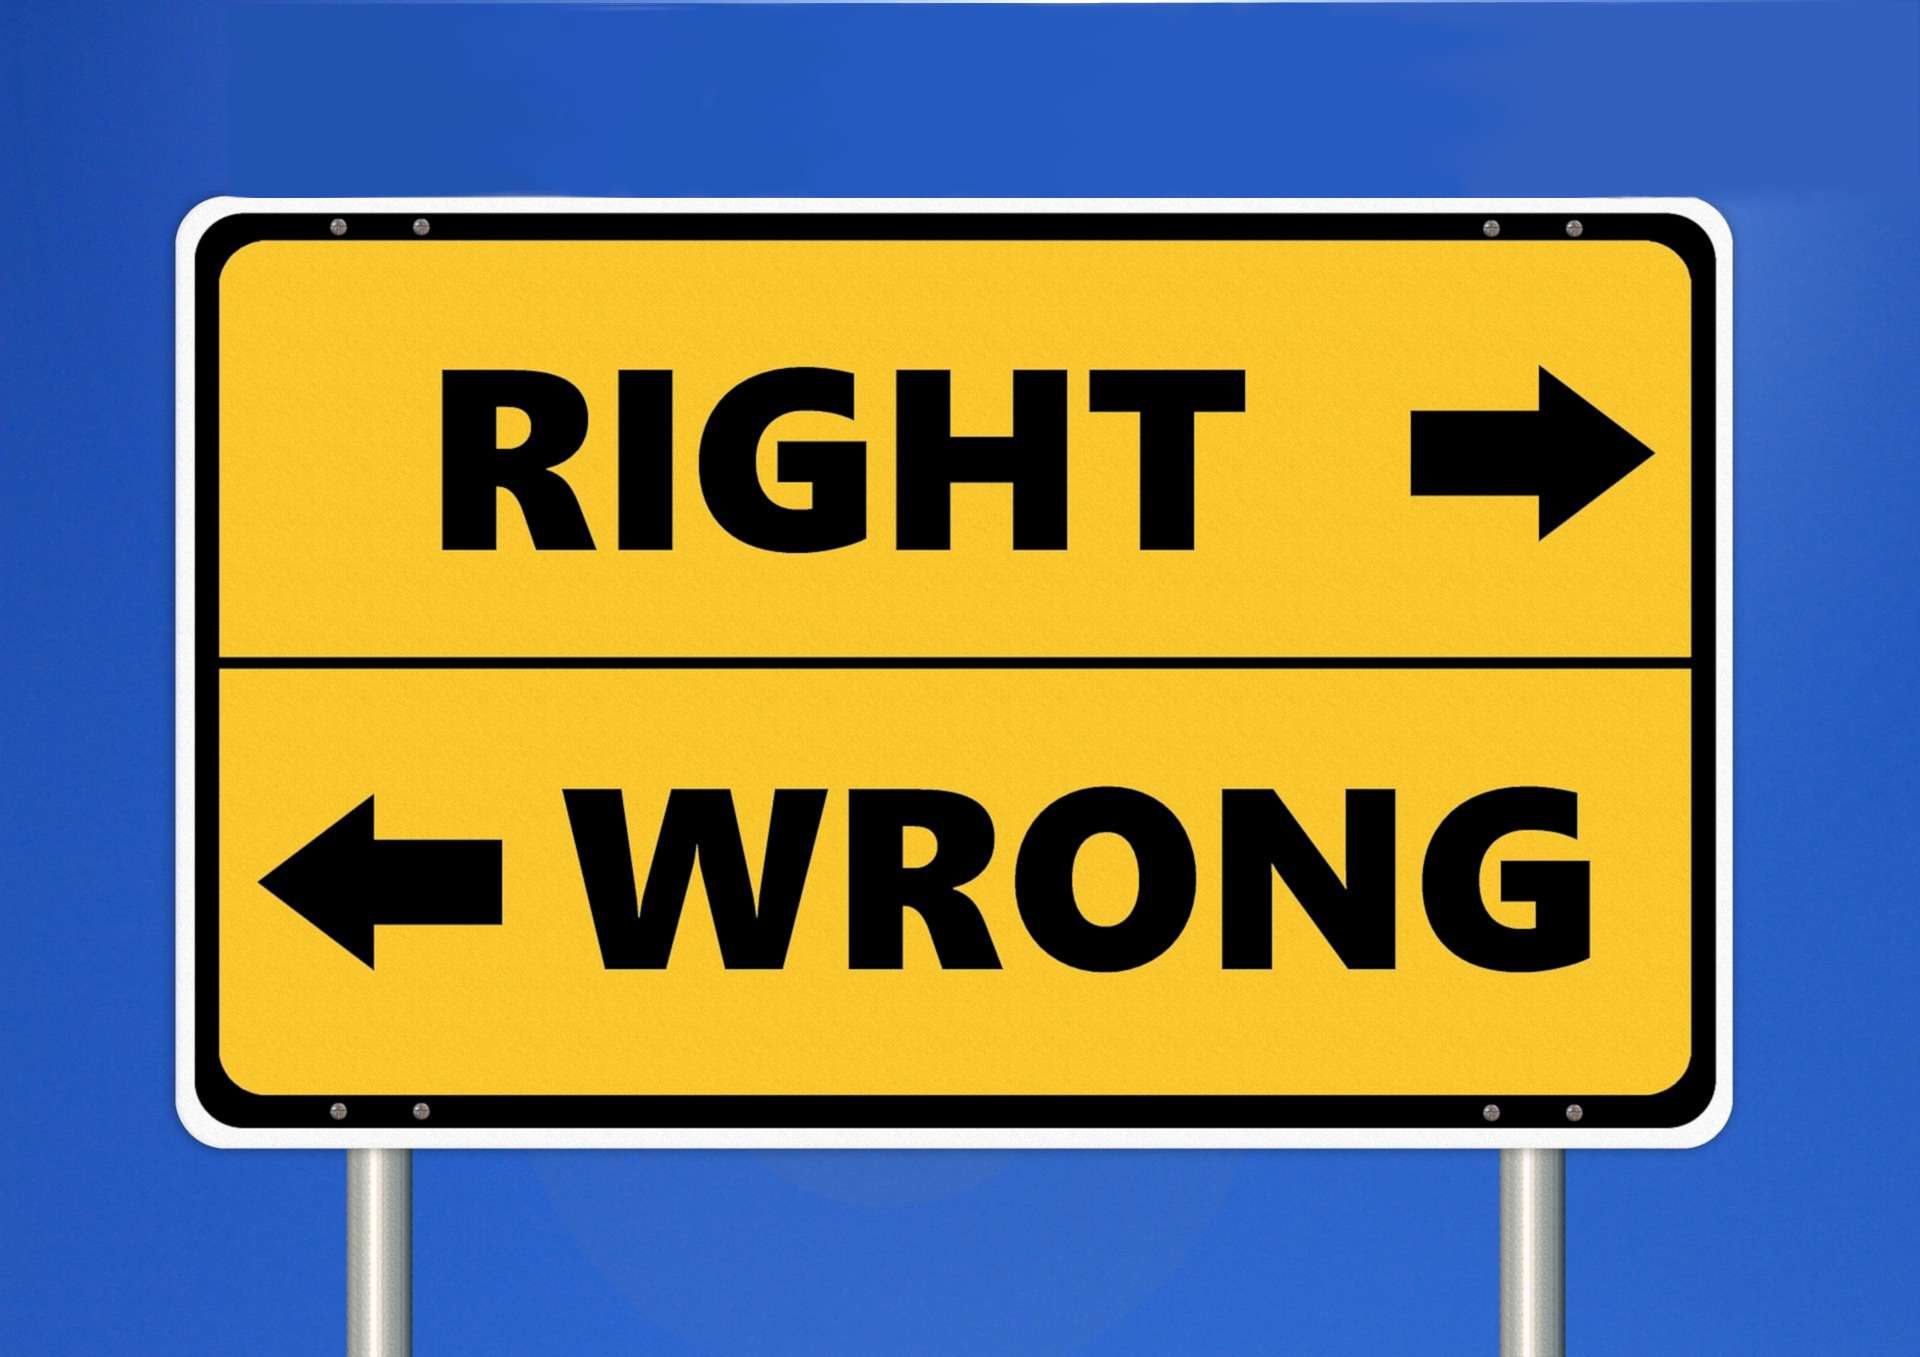 Operating Your Business Ethically